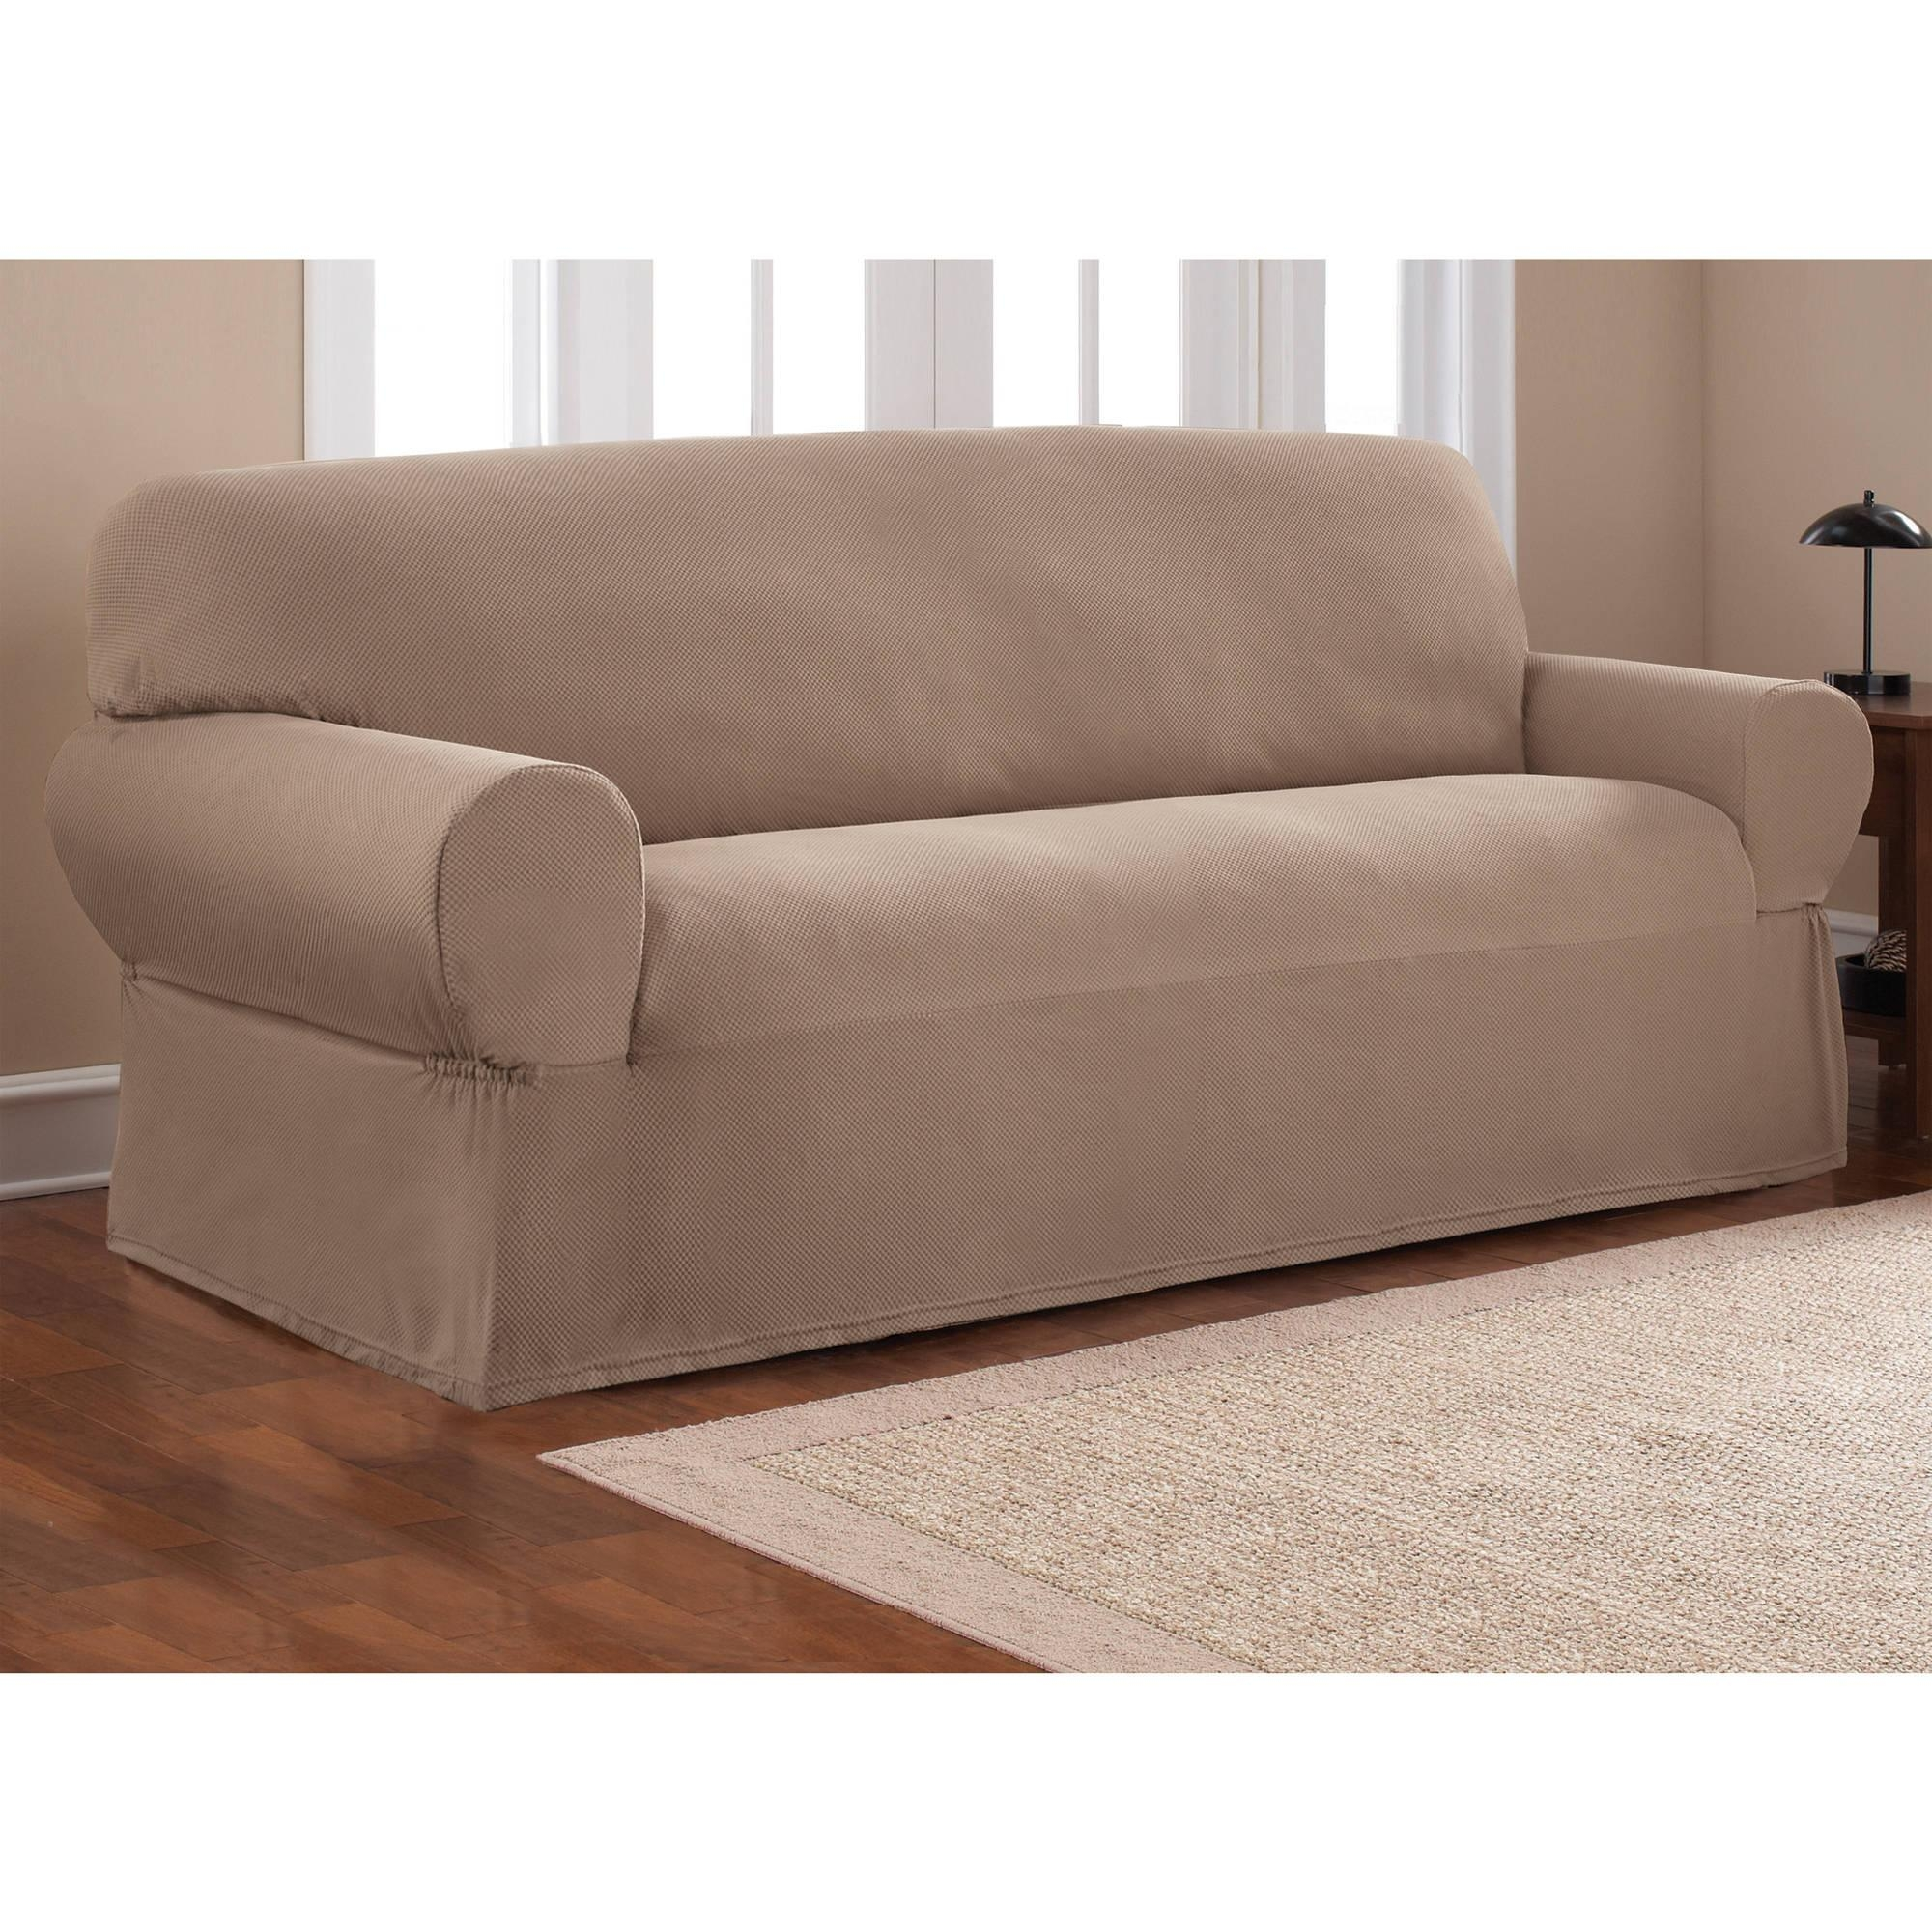 Mainstays 1 Piece Stretch Fabric Sofa Slipcover – Walmart With Regard To Wallmart Sofa (View 4 of 20)